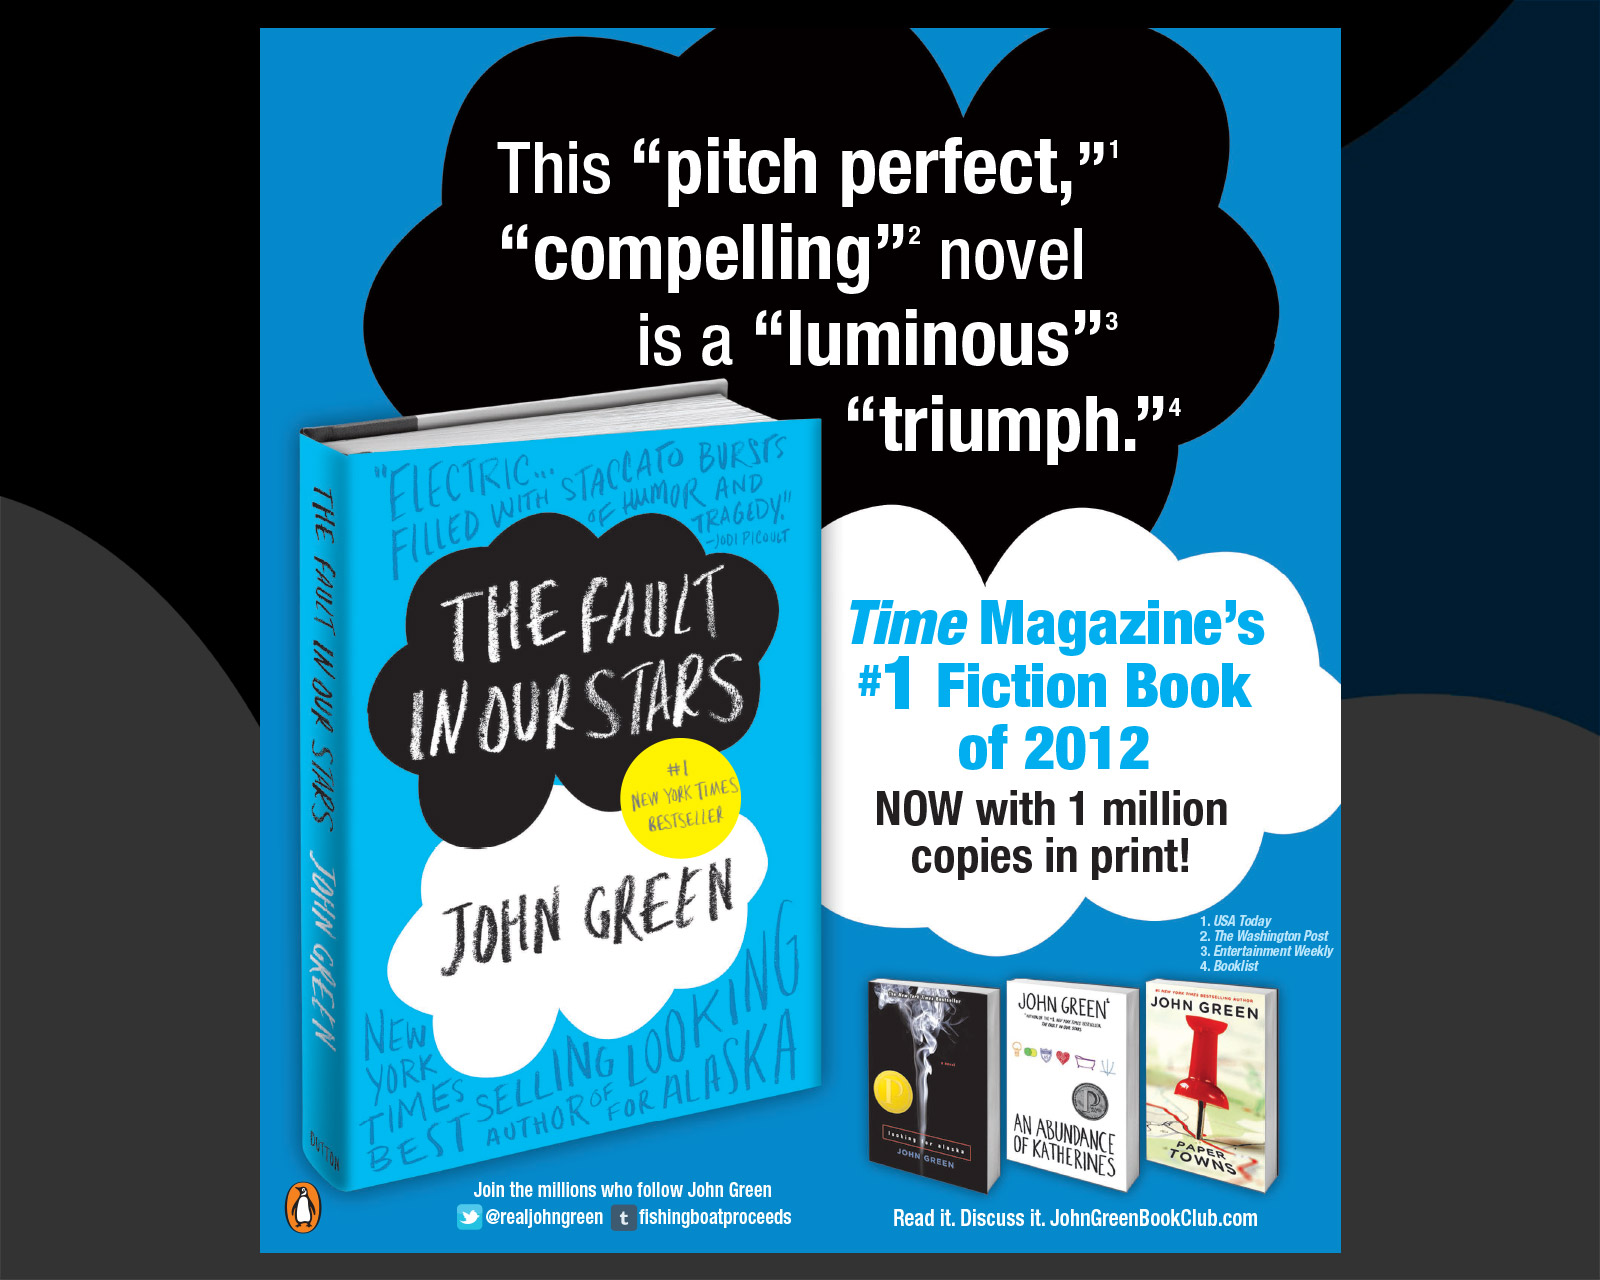 John Green - The Fault In Our Stars - New York Times Book Review